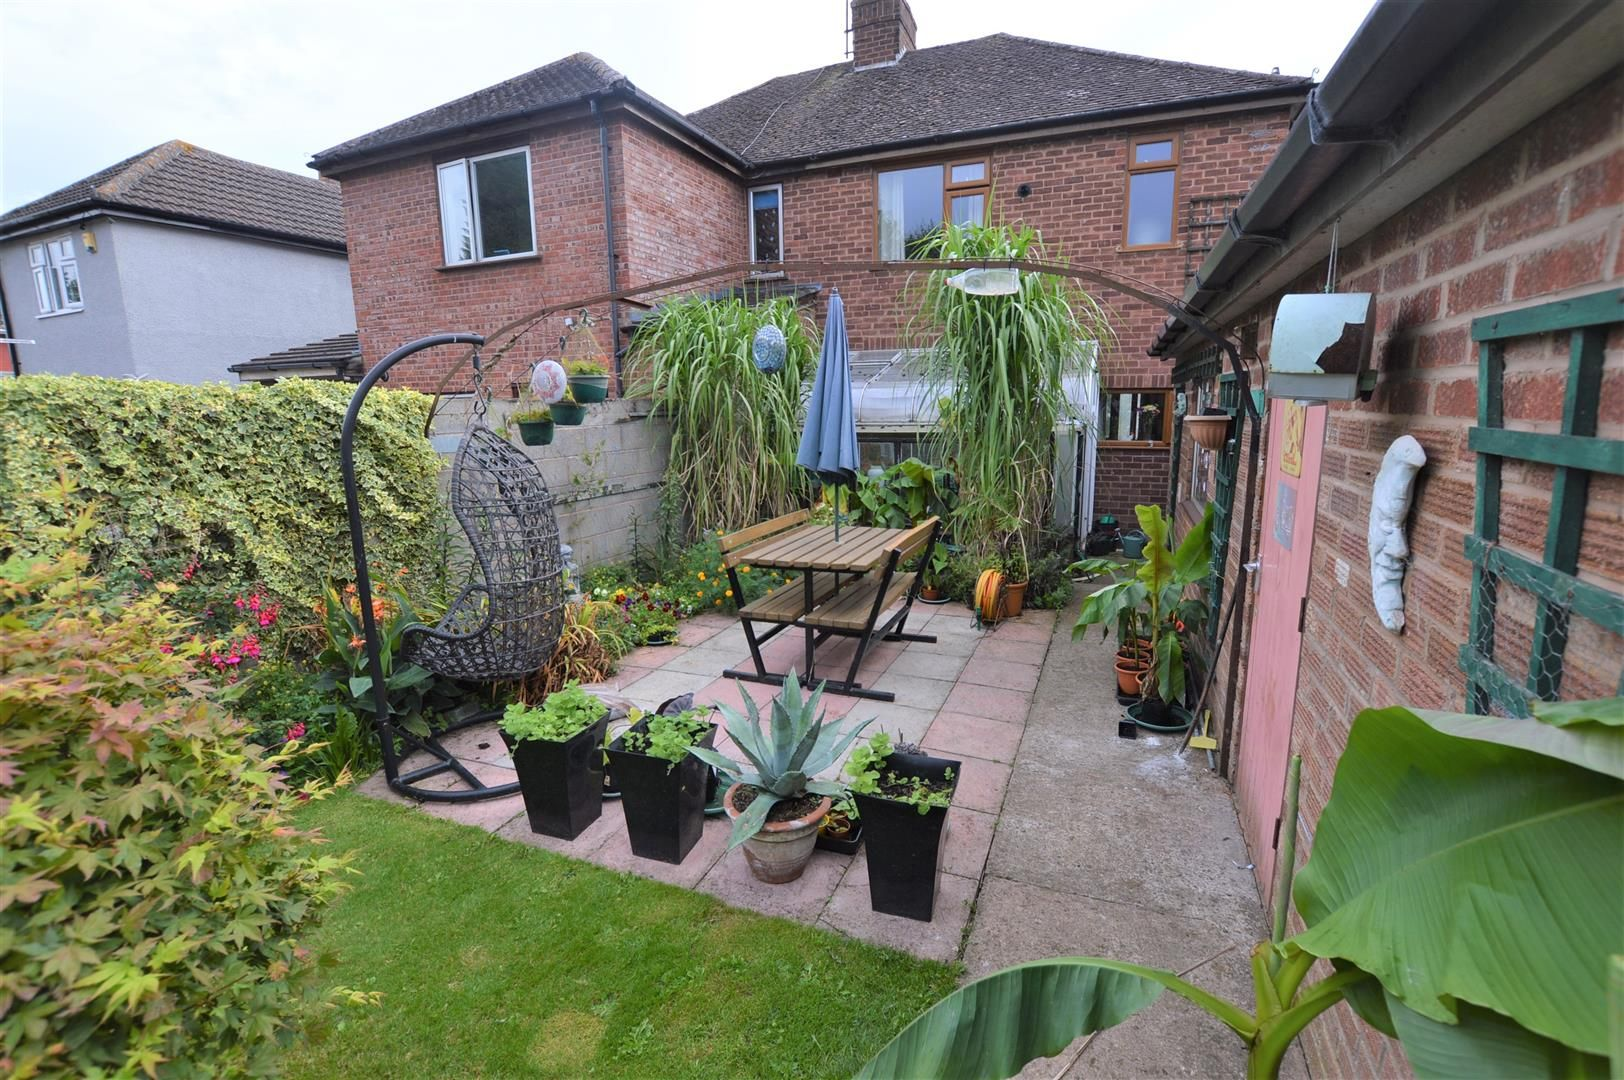 3 bed semi-detached for sale in Hereford  - Property Image 13